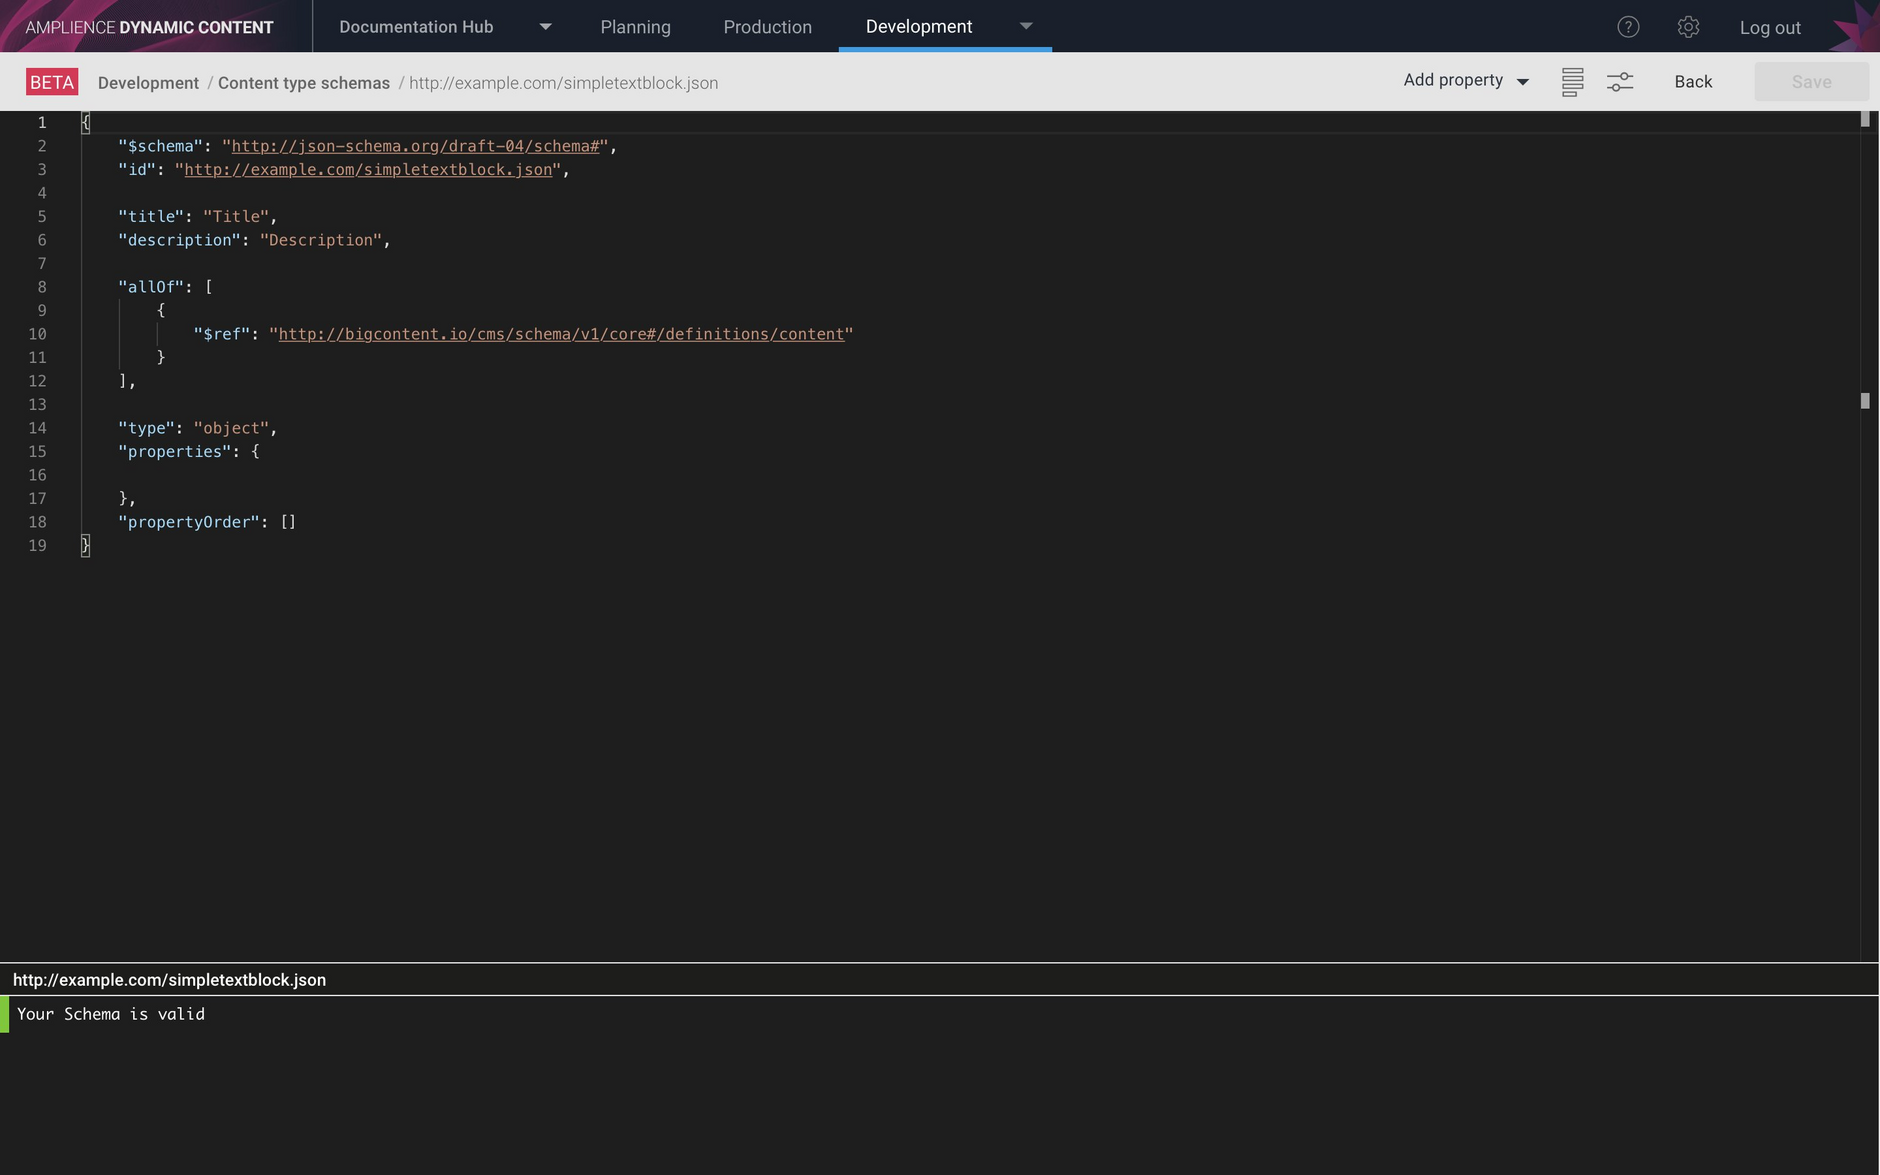 The schema editor opens with the outline of the schema filled in ready for you to add properties